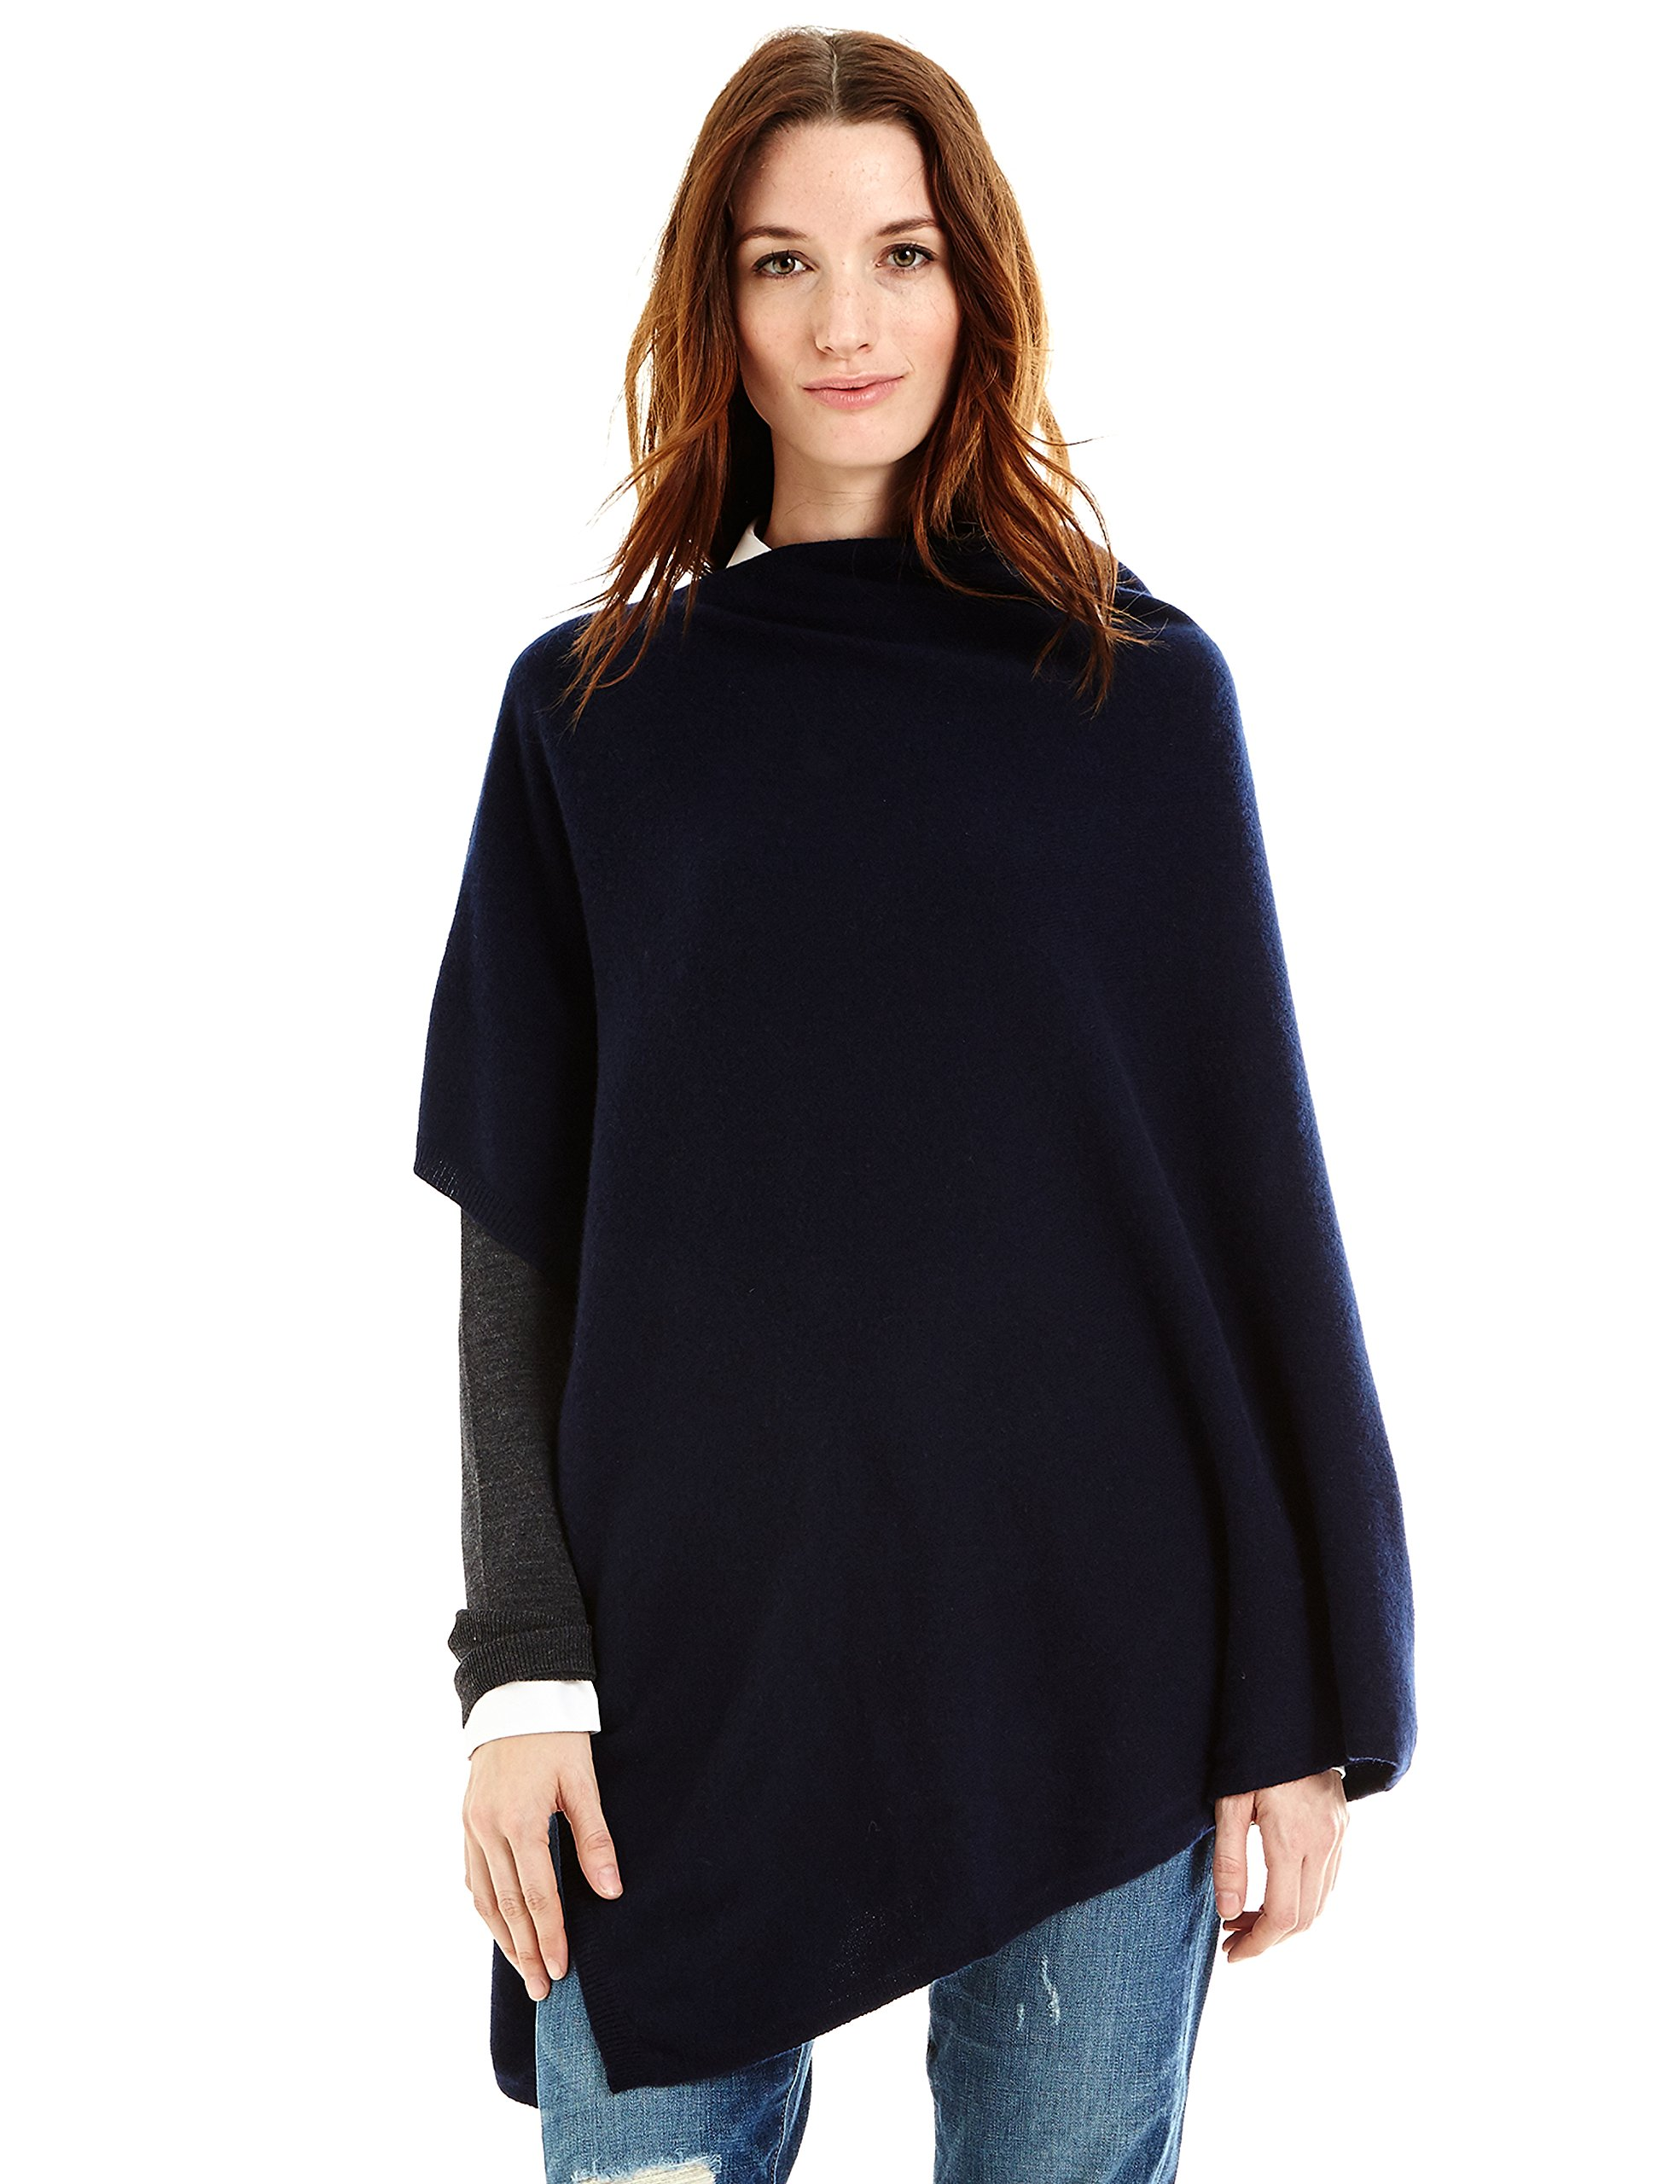 New York Cashmere 100% Pure Cashmere Draped Poncho (French Navy) by New York Cashmere